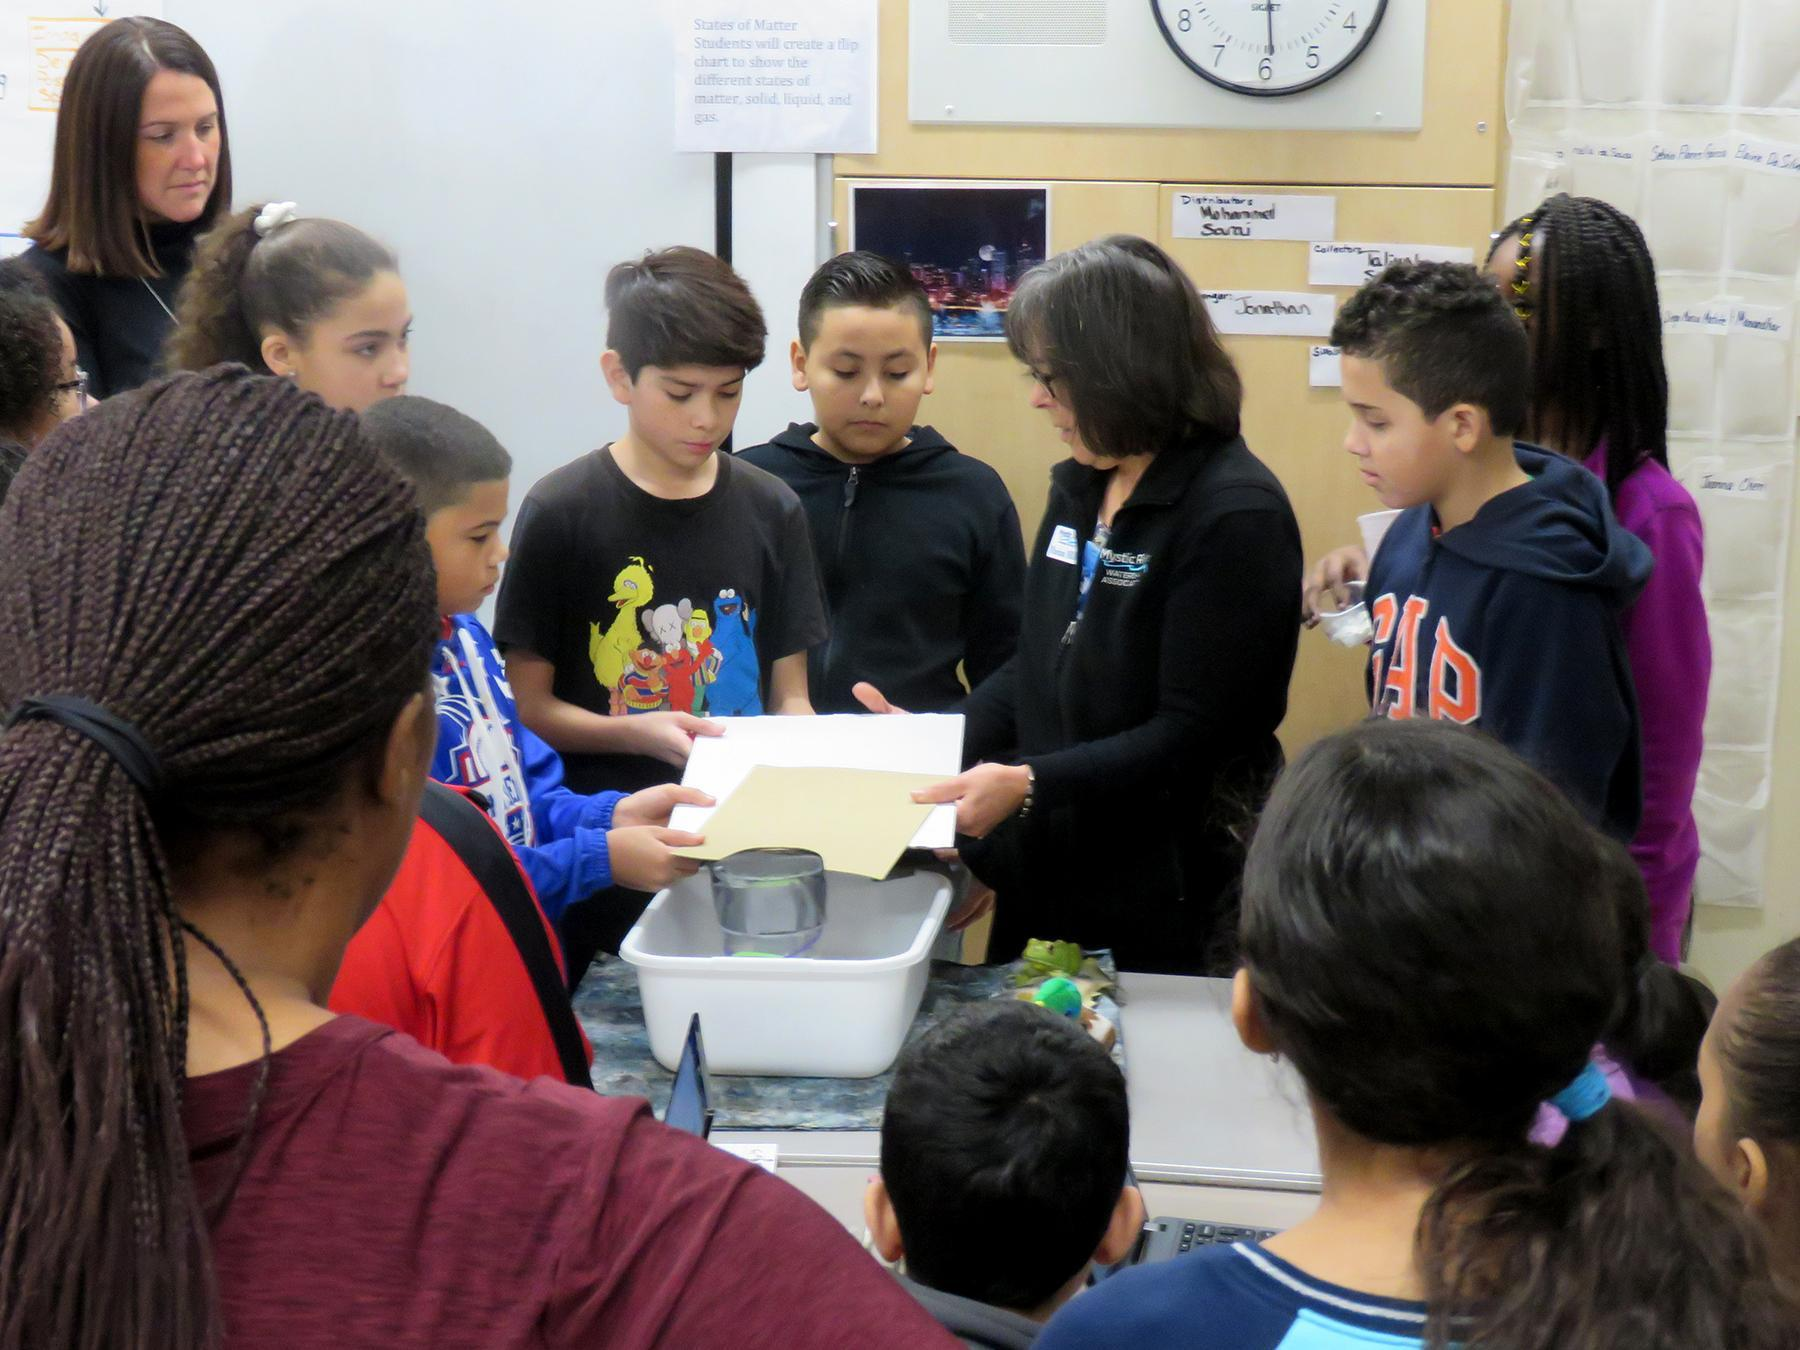 Students test a filtration device